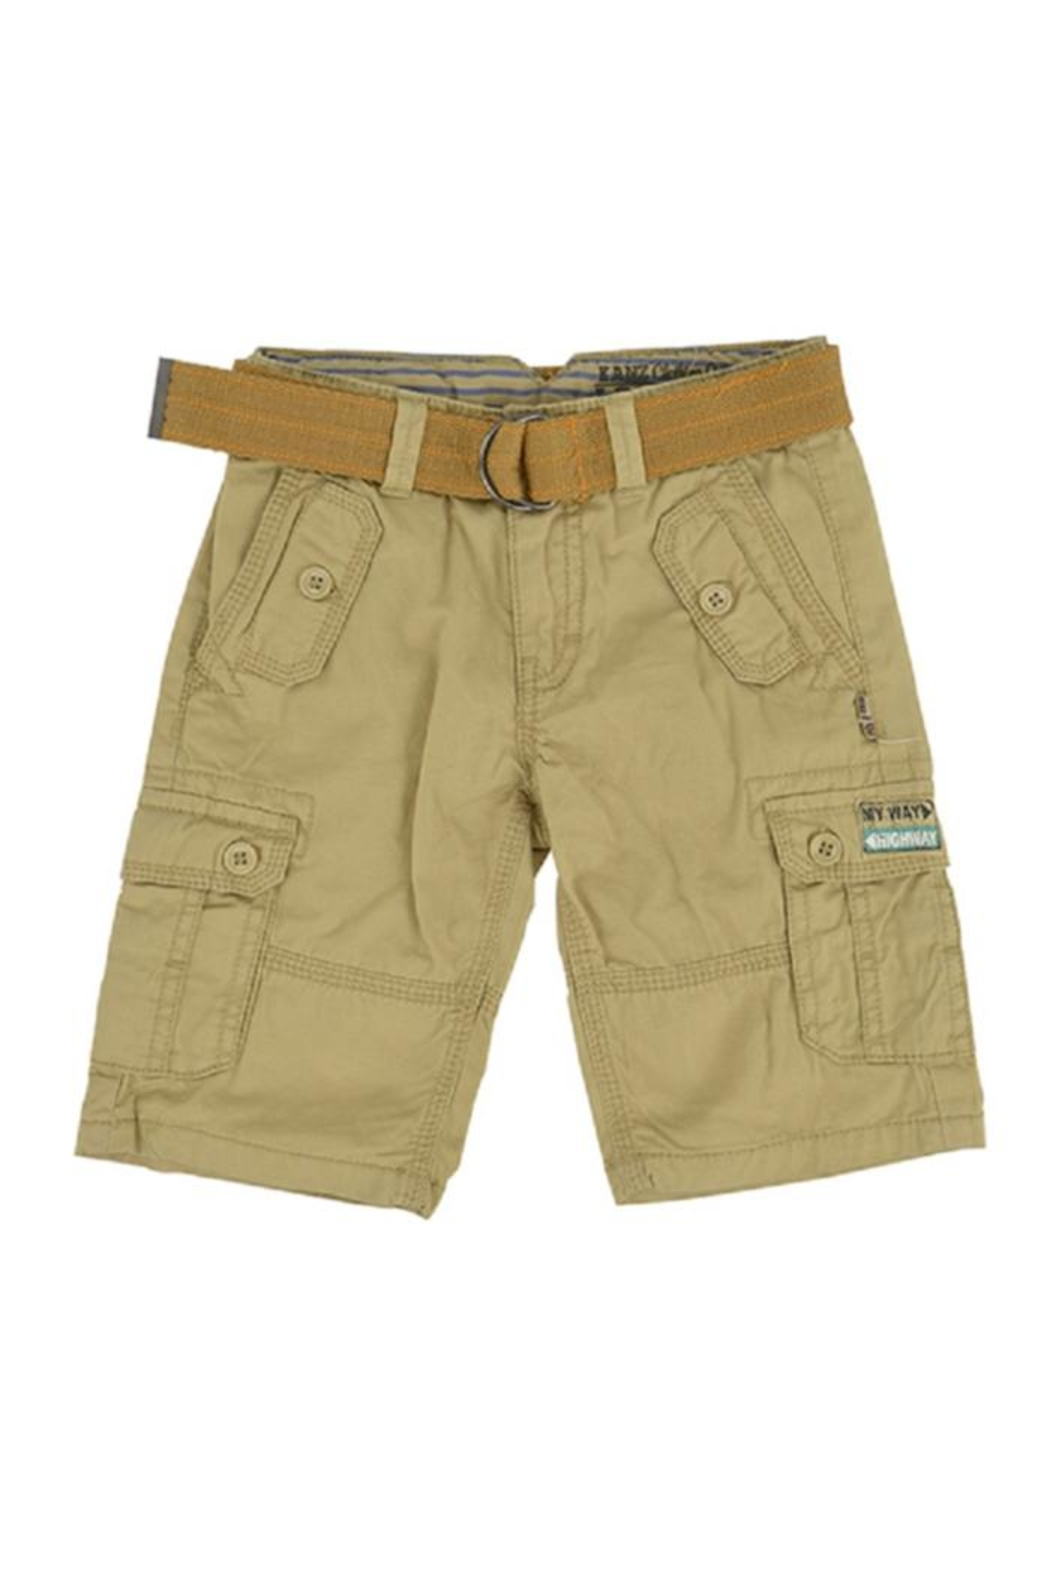 Kanz Roadtrip Cargo Short - Main Image